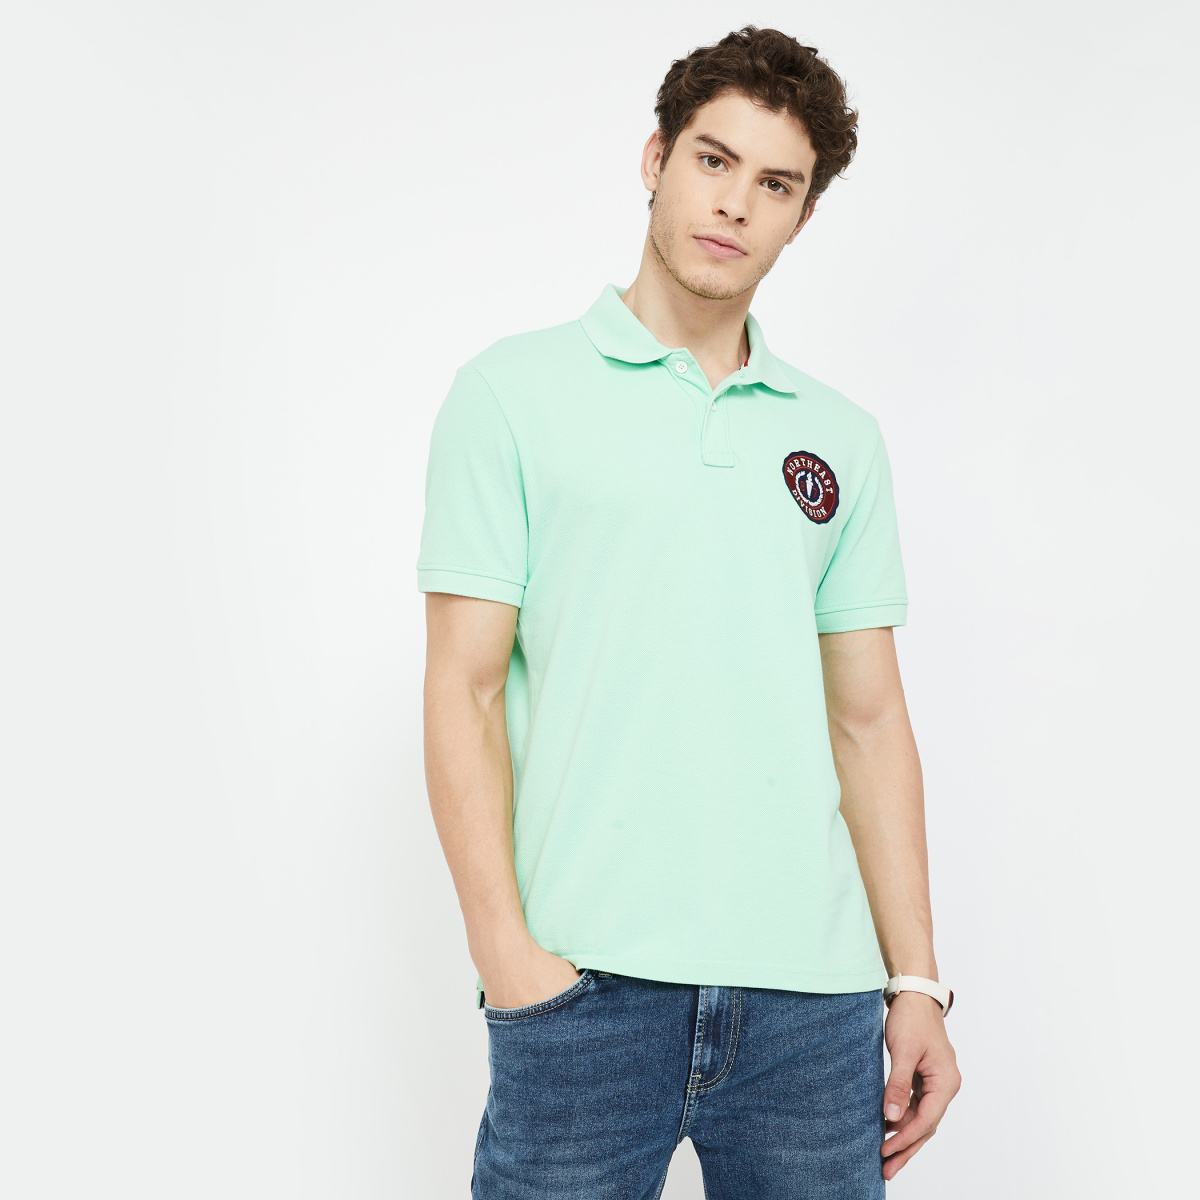 AEROPOSTALE Patchworked Regular Fit Polo T-shirt